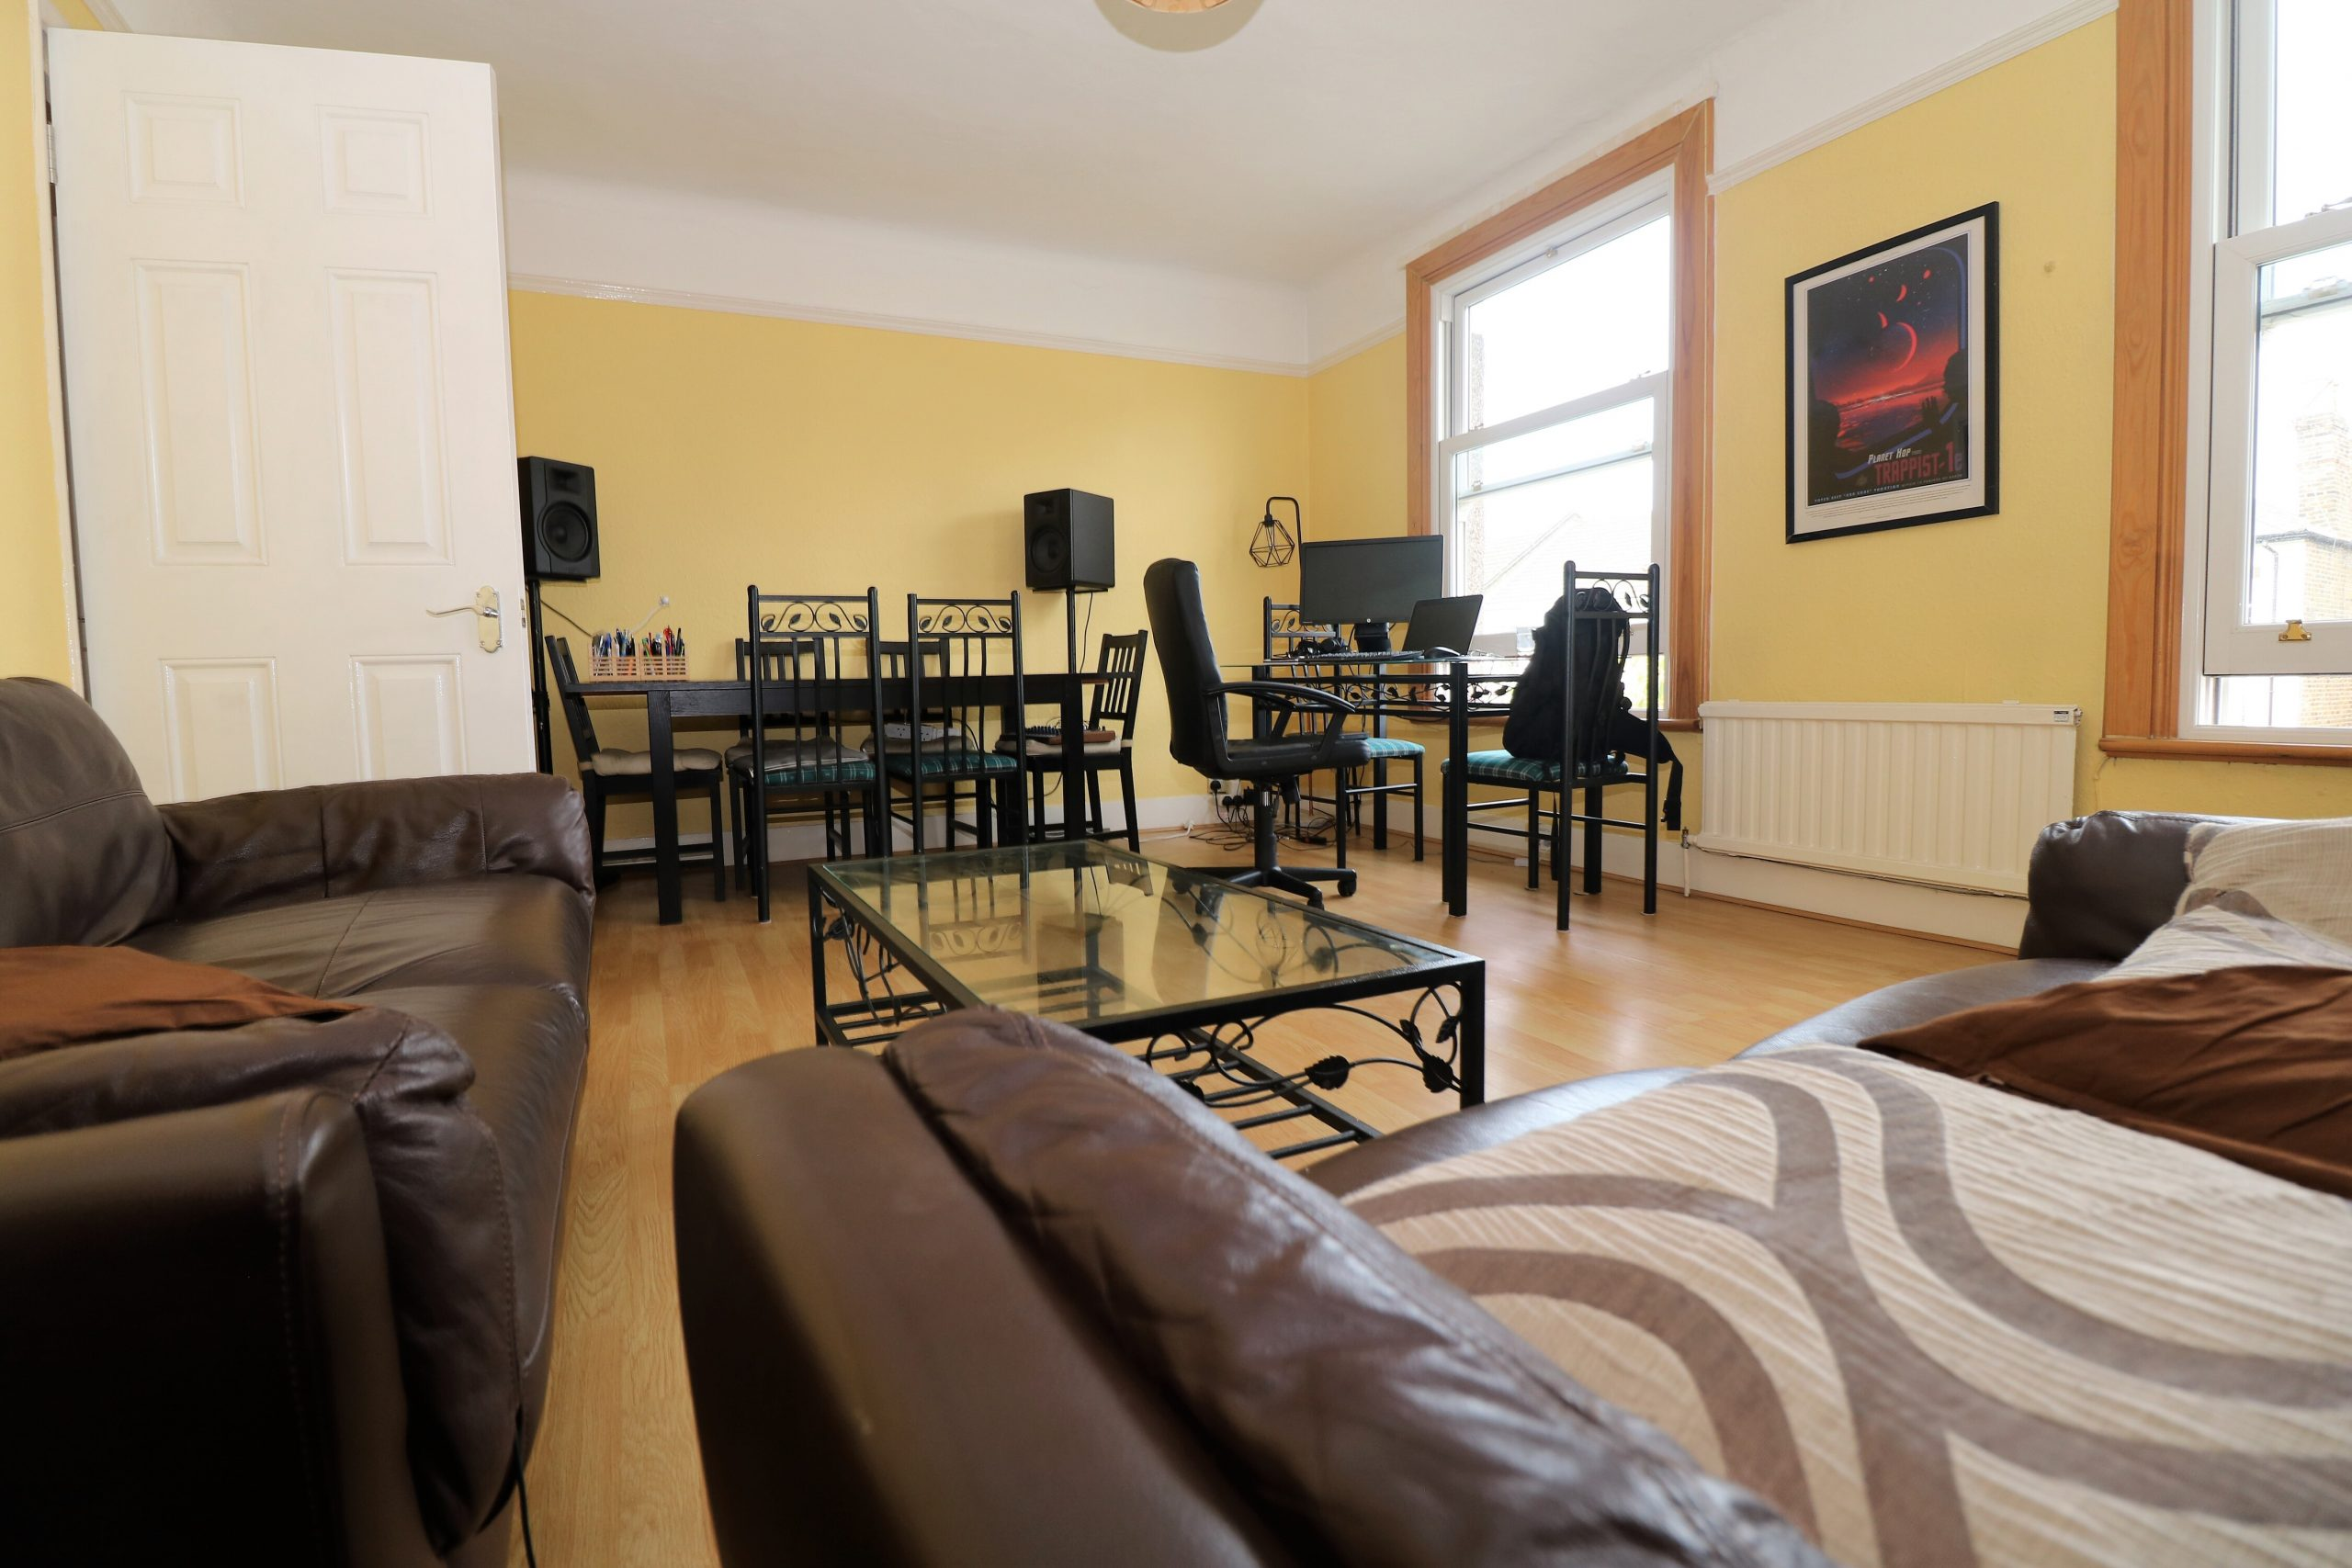 Top floor split level one bedroom flat in Stroud Green, N4